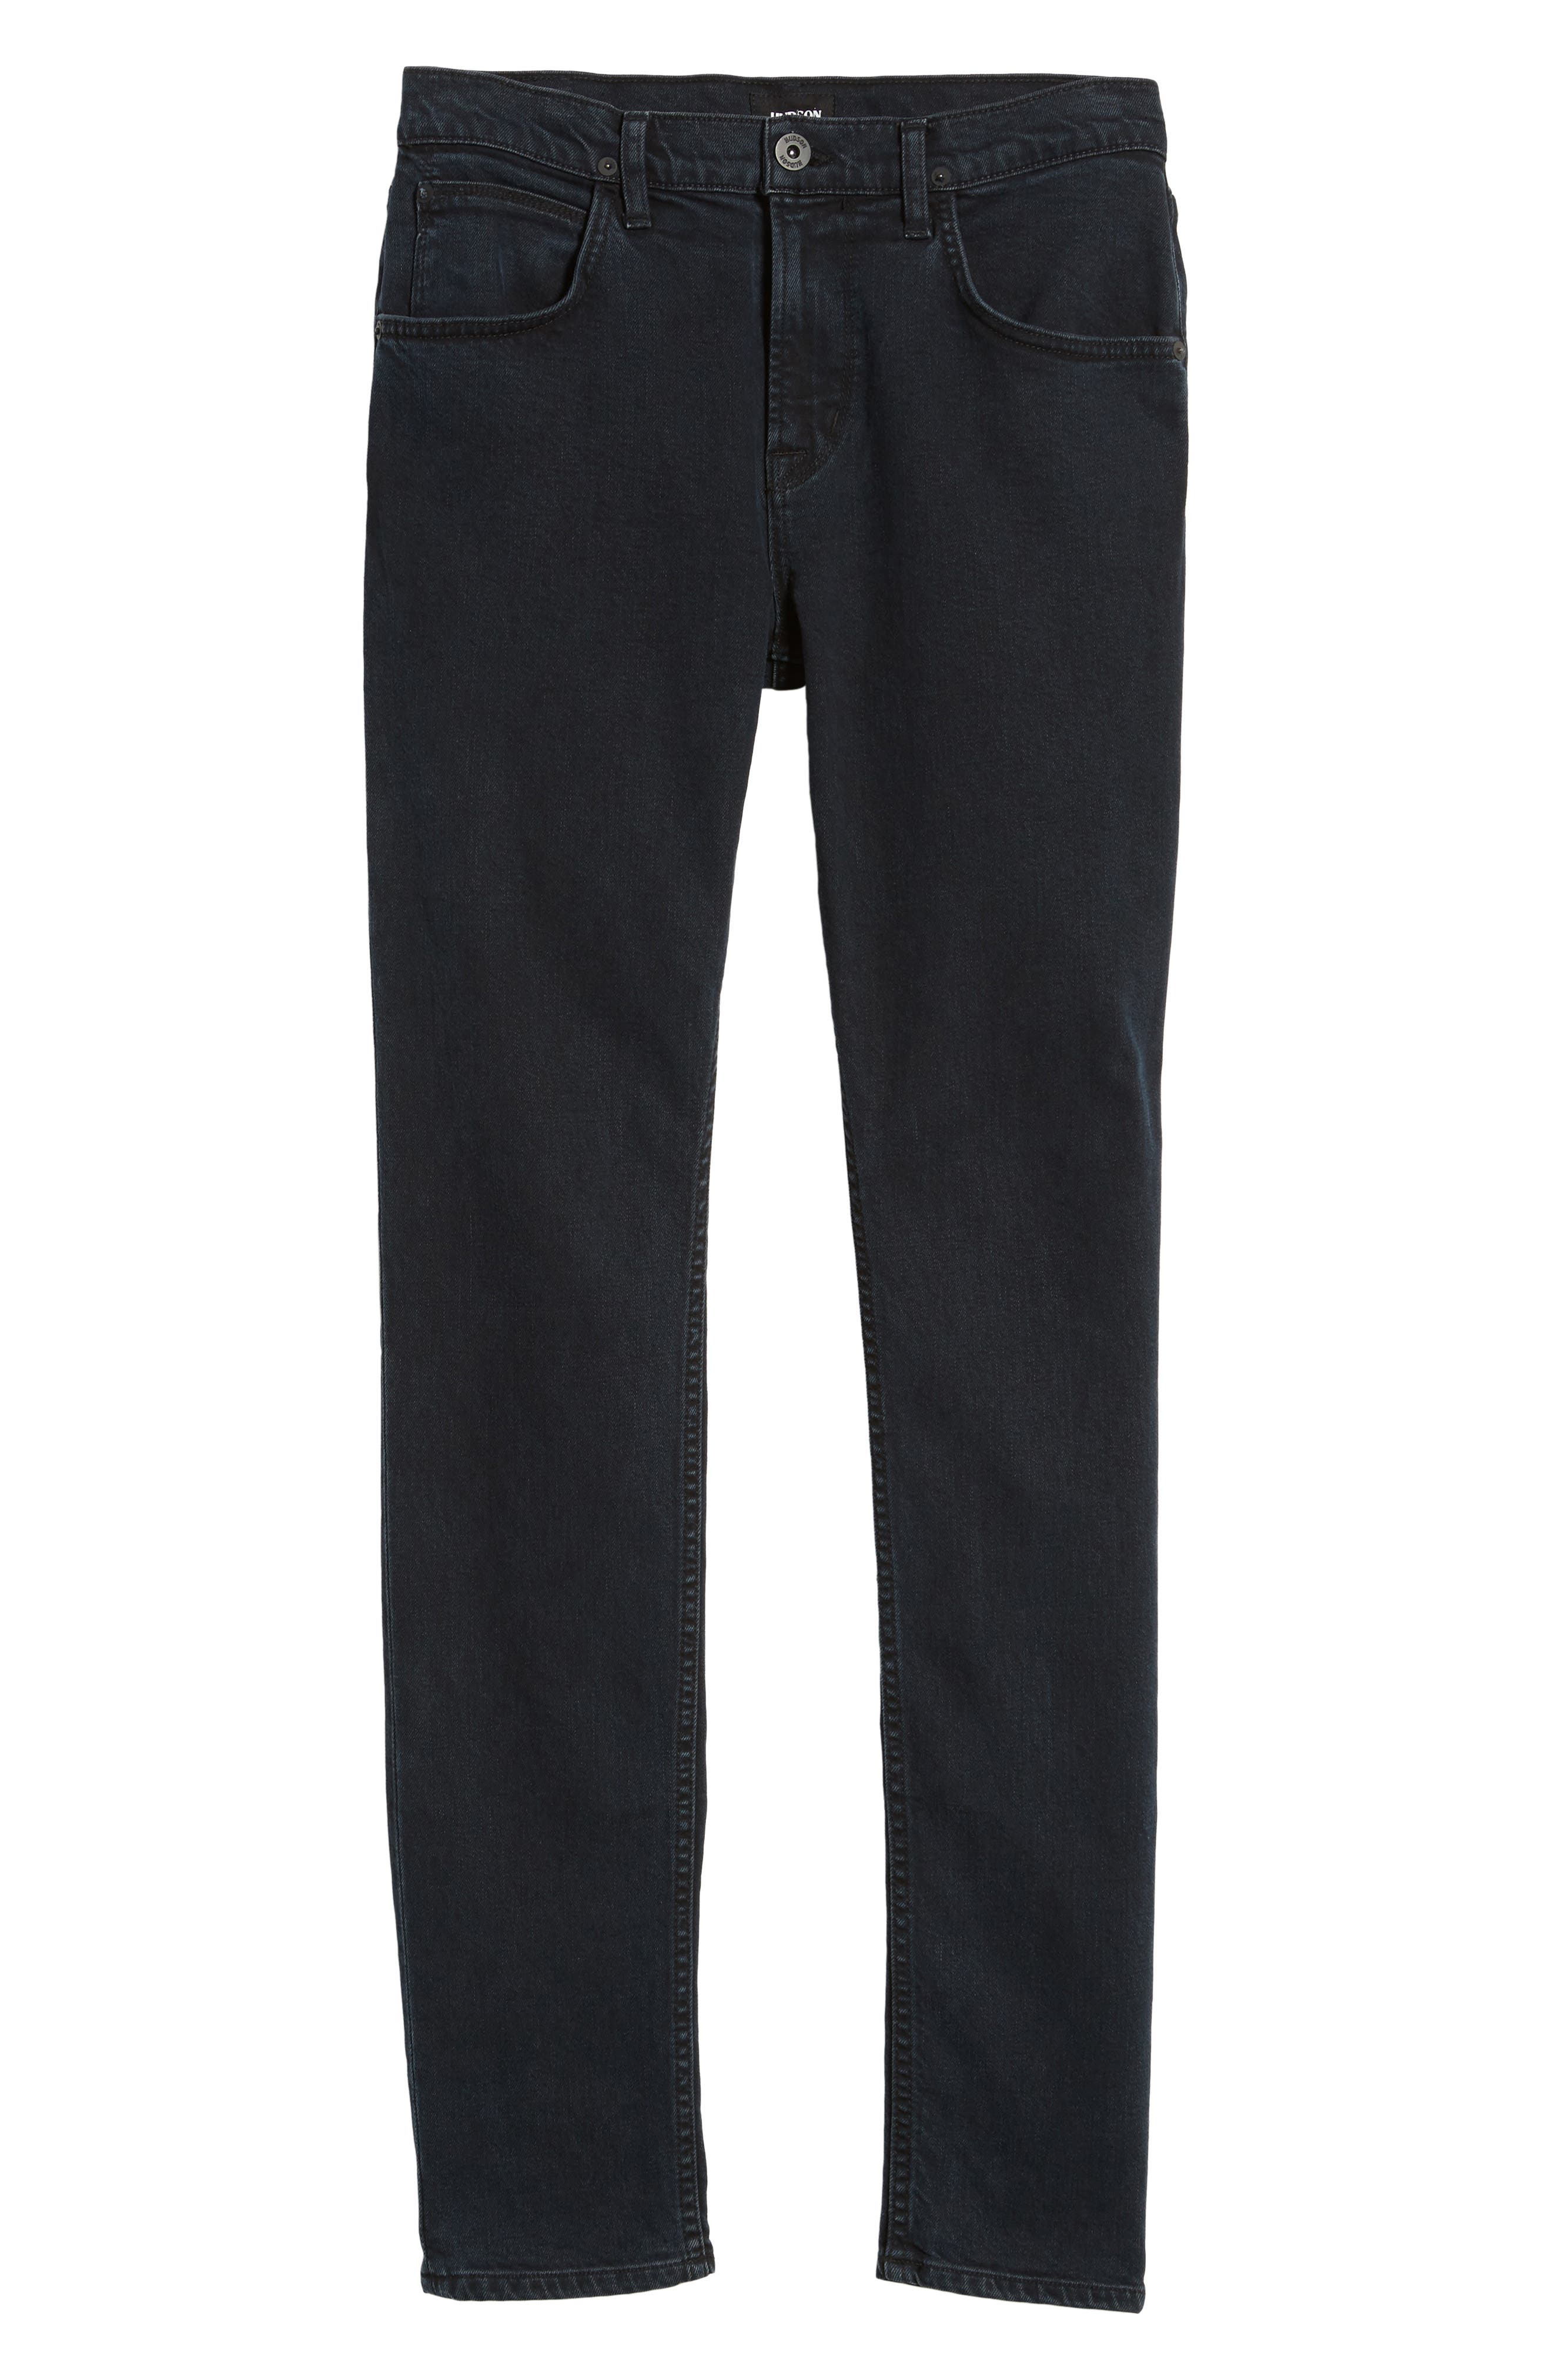 Axl Skinny Fit Jeans,                             Alternate thumbnail 6, color,                             401